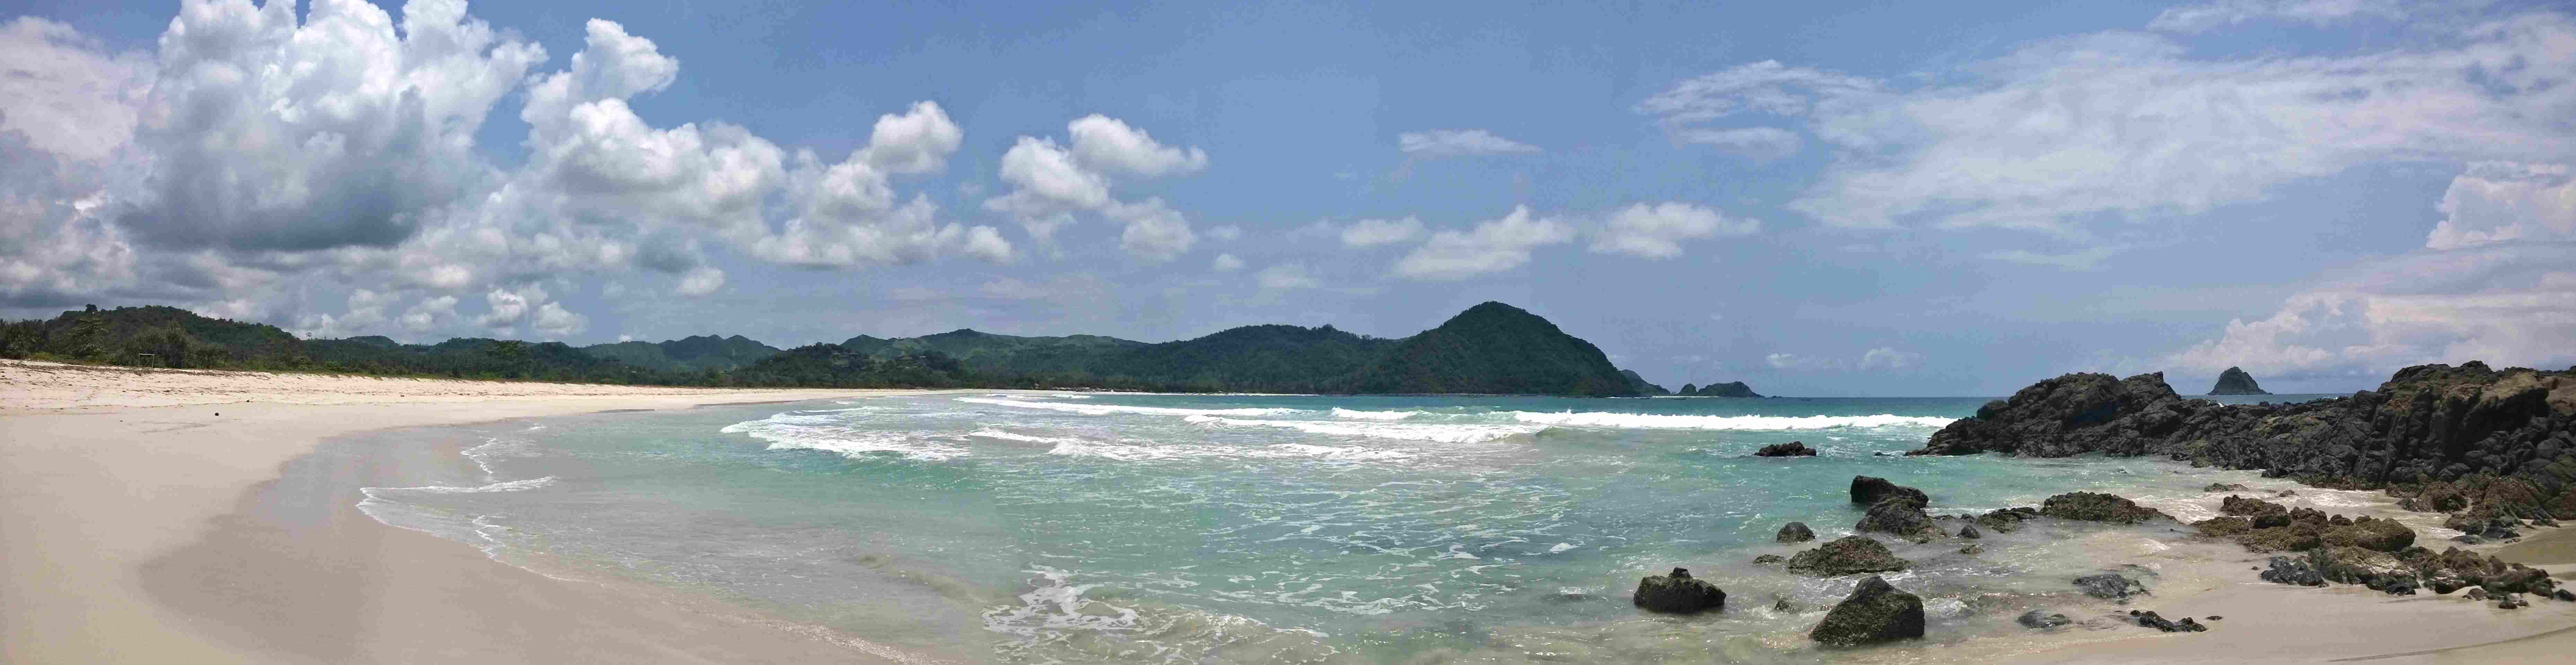 Selong Belanak- beach in Lombok